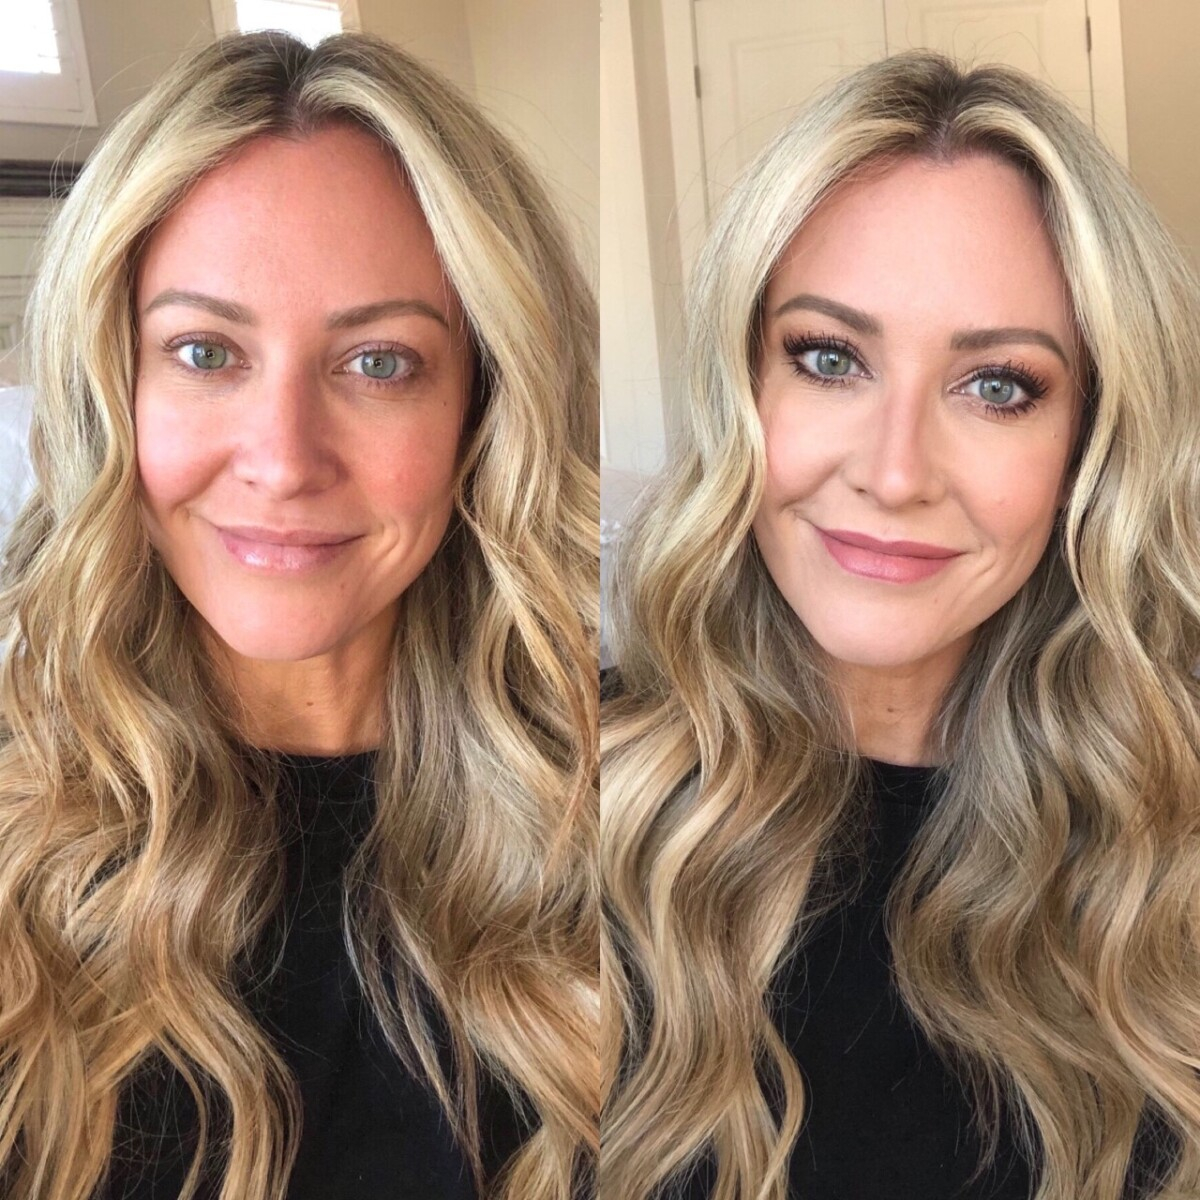 holiday beauty | Nordstrom Beauty by popular Houston beauty blog, Haute and Humid: side by side image of a woman with and without makeup.